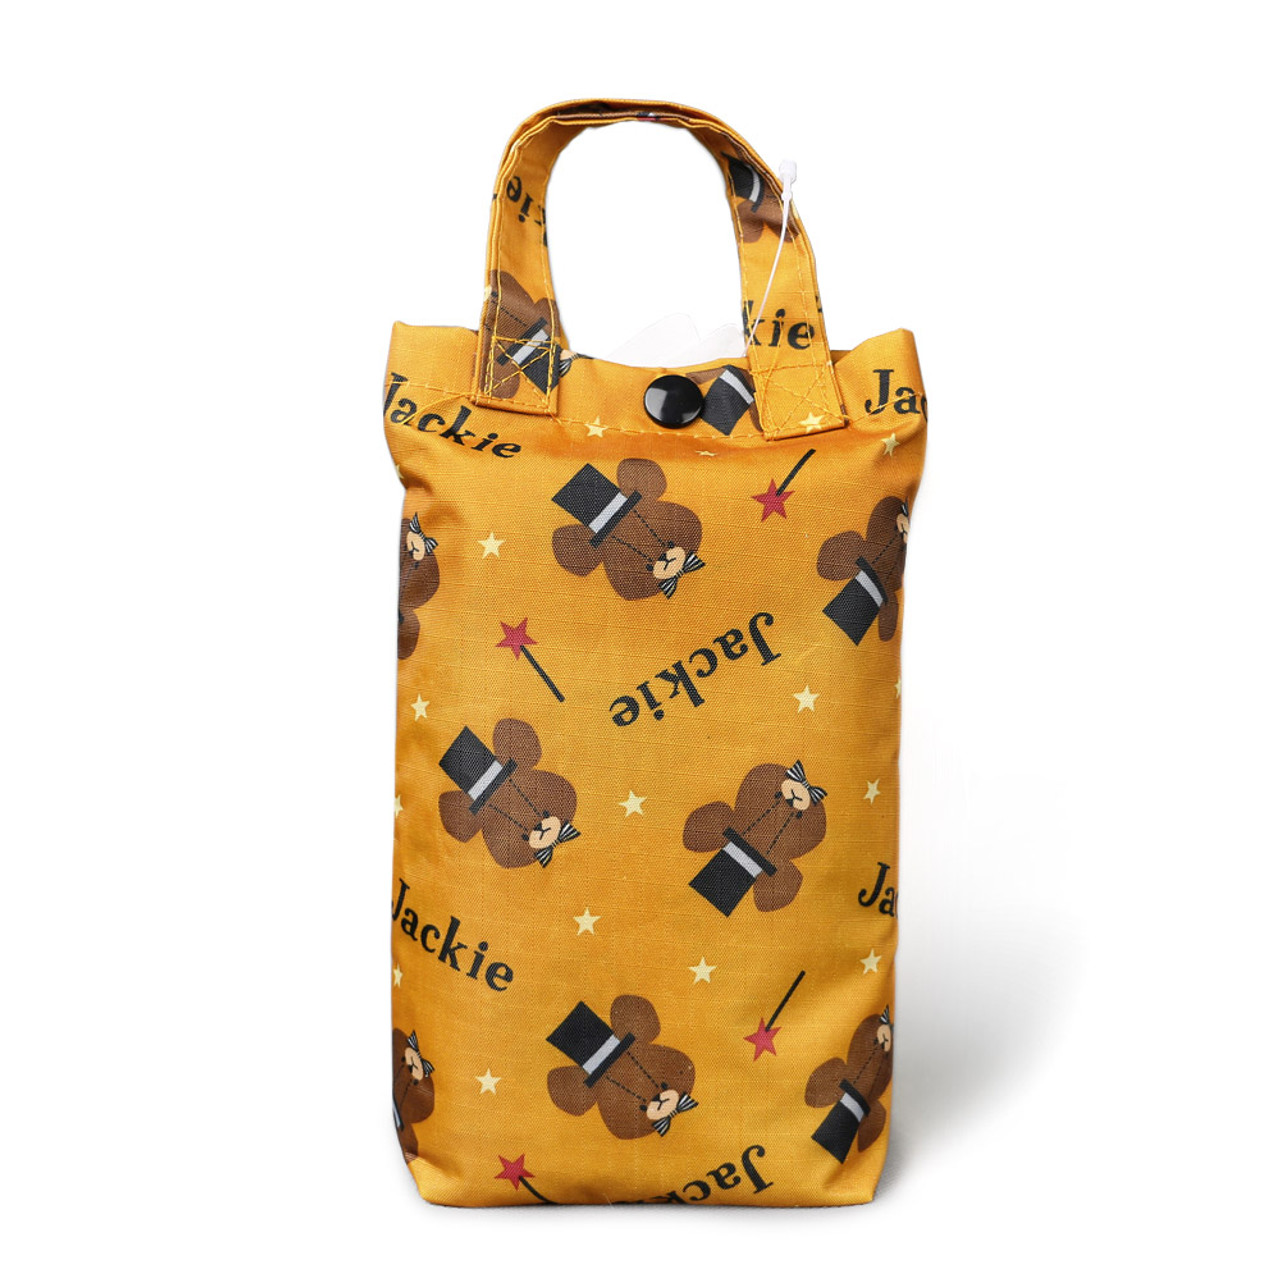 The Bears' School Jackie Shopping Bag - Brown ( Folded Mode )